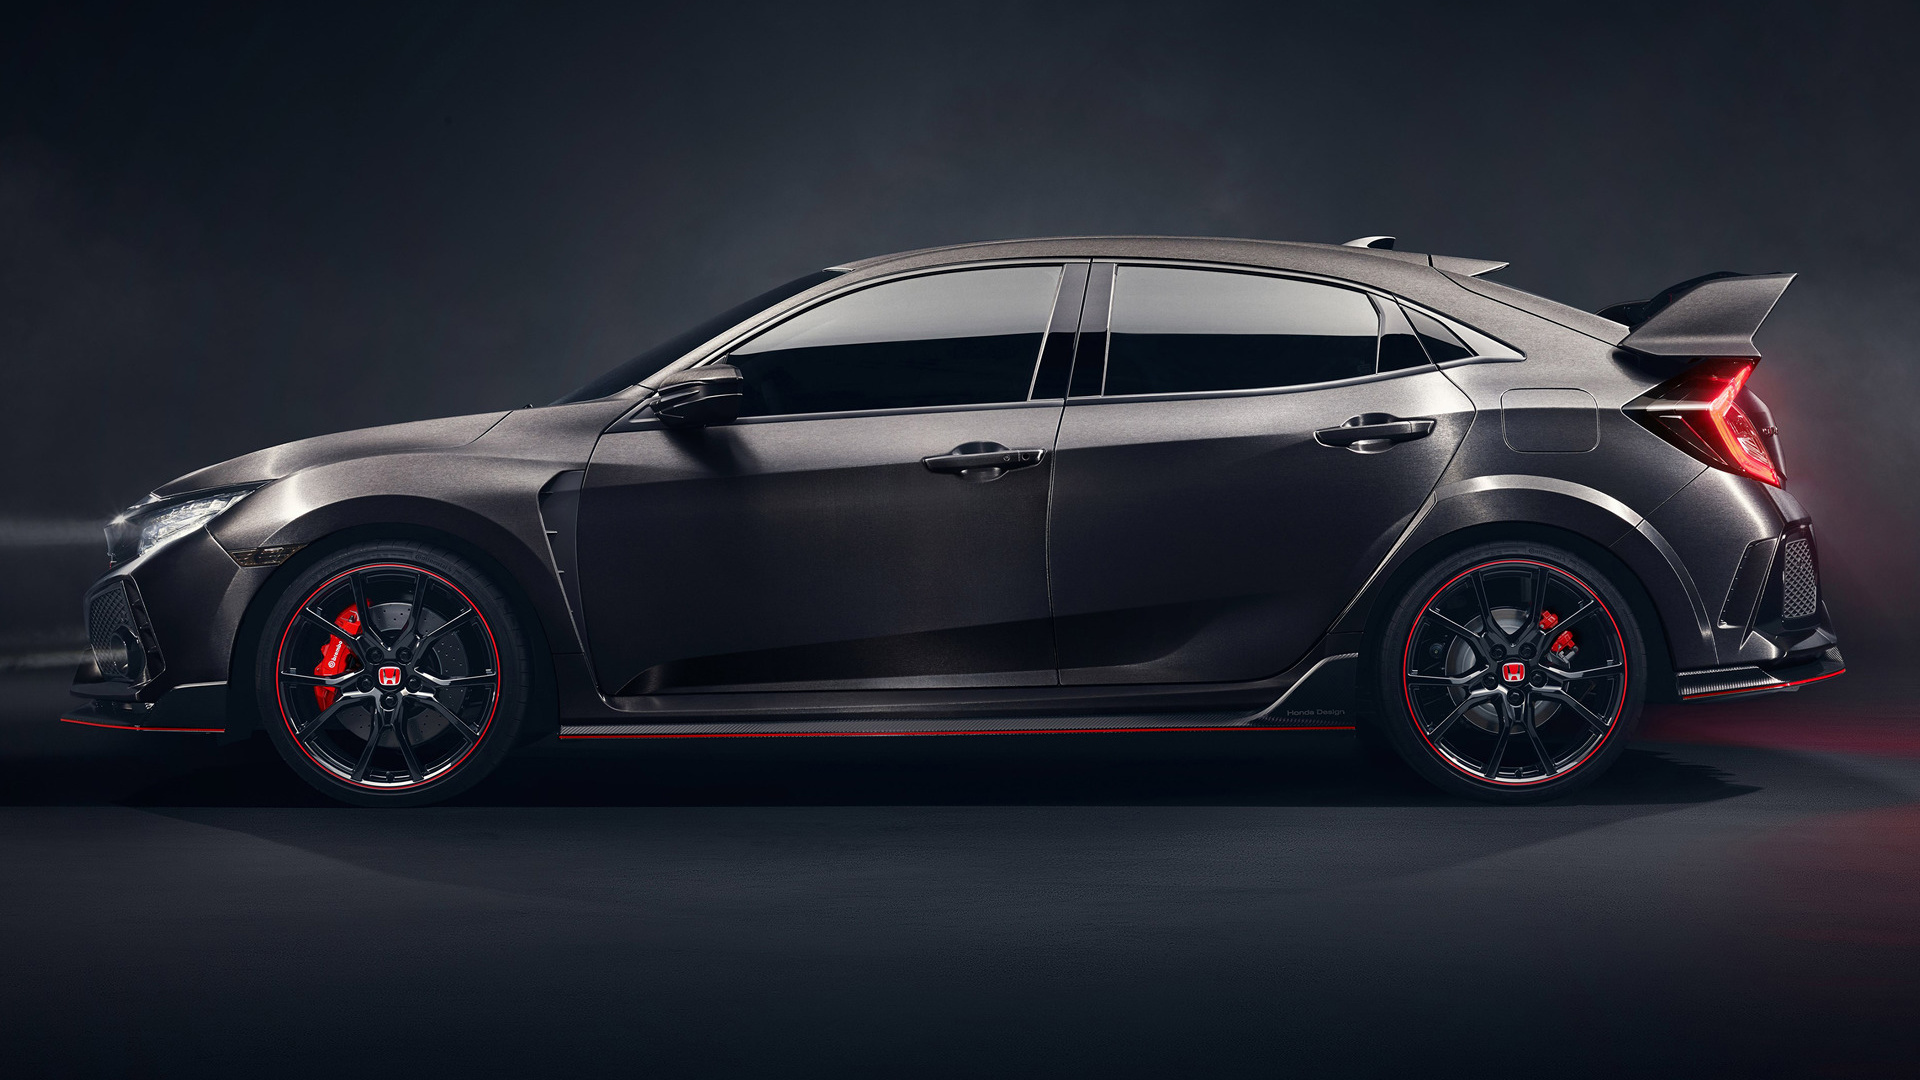 2016 Honda Civic Type R Prototype - Wallpapers and HD ...